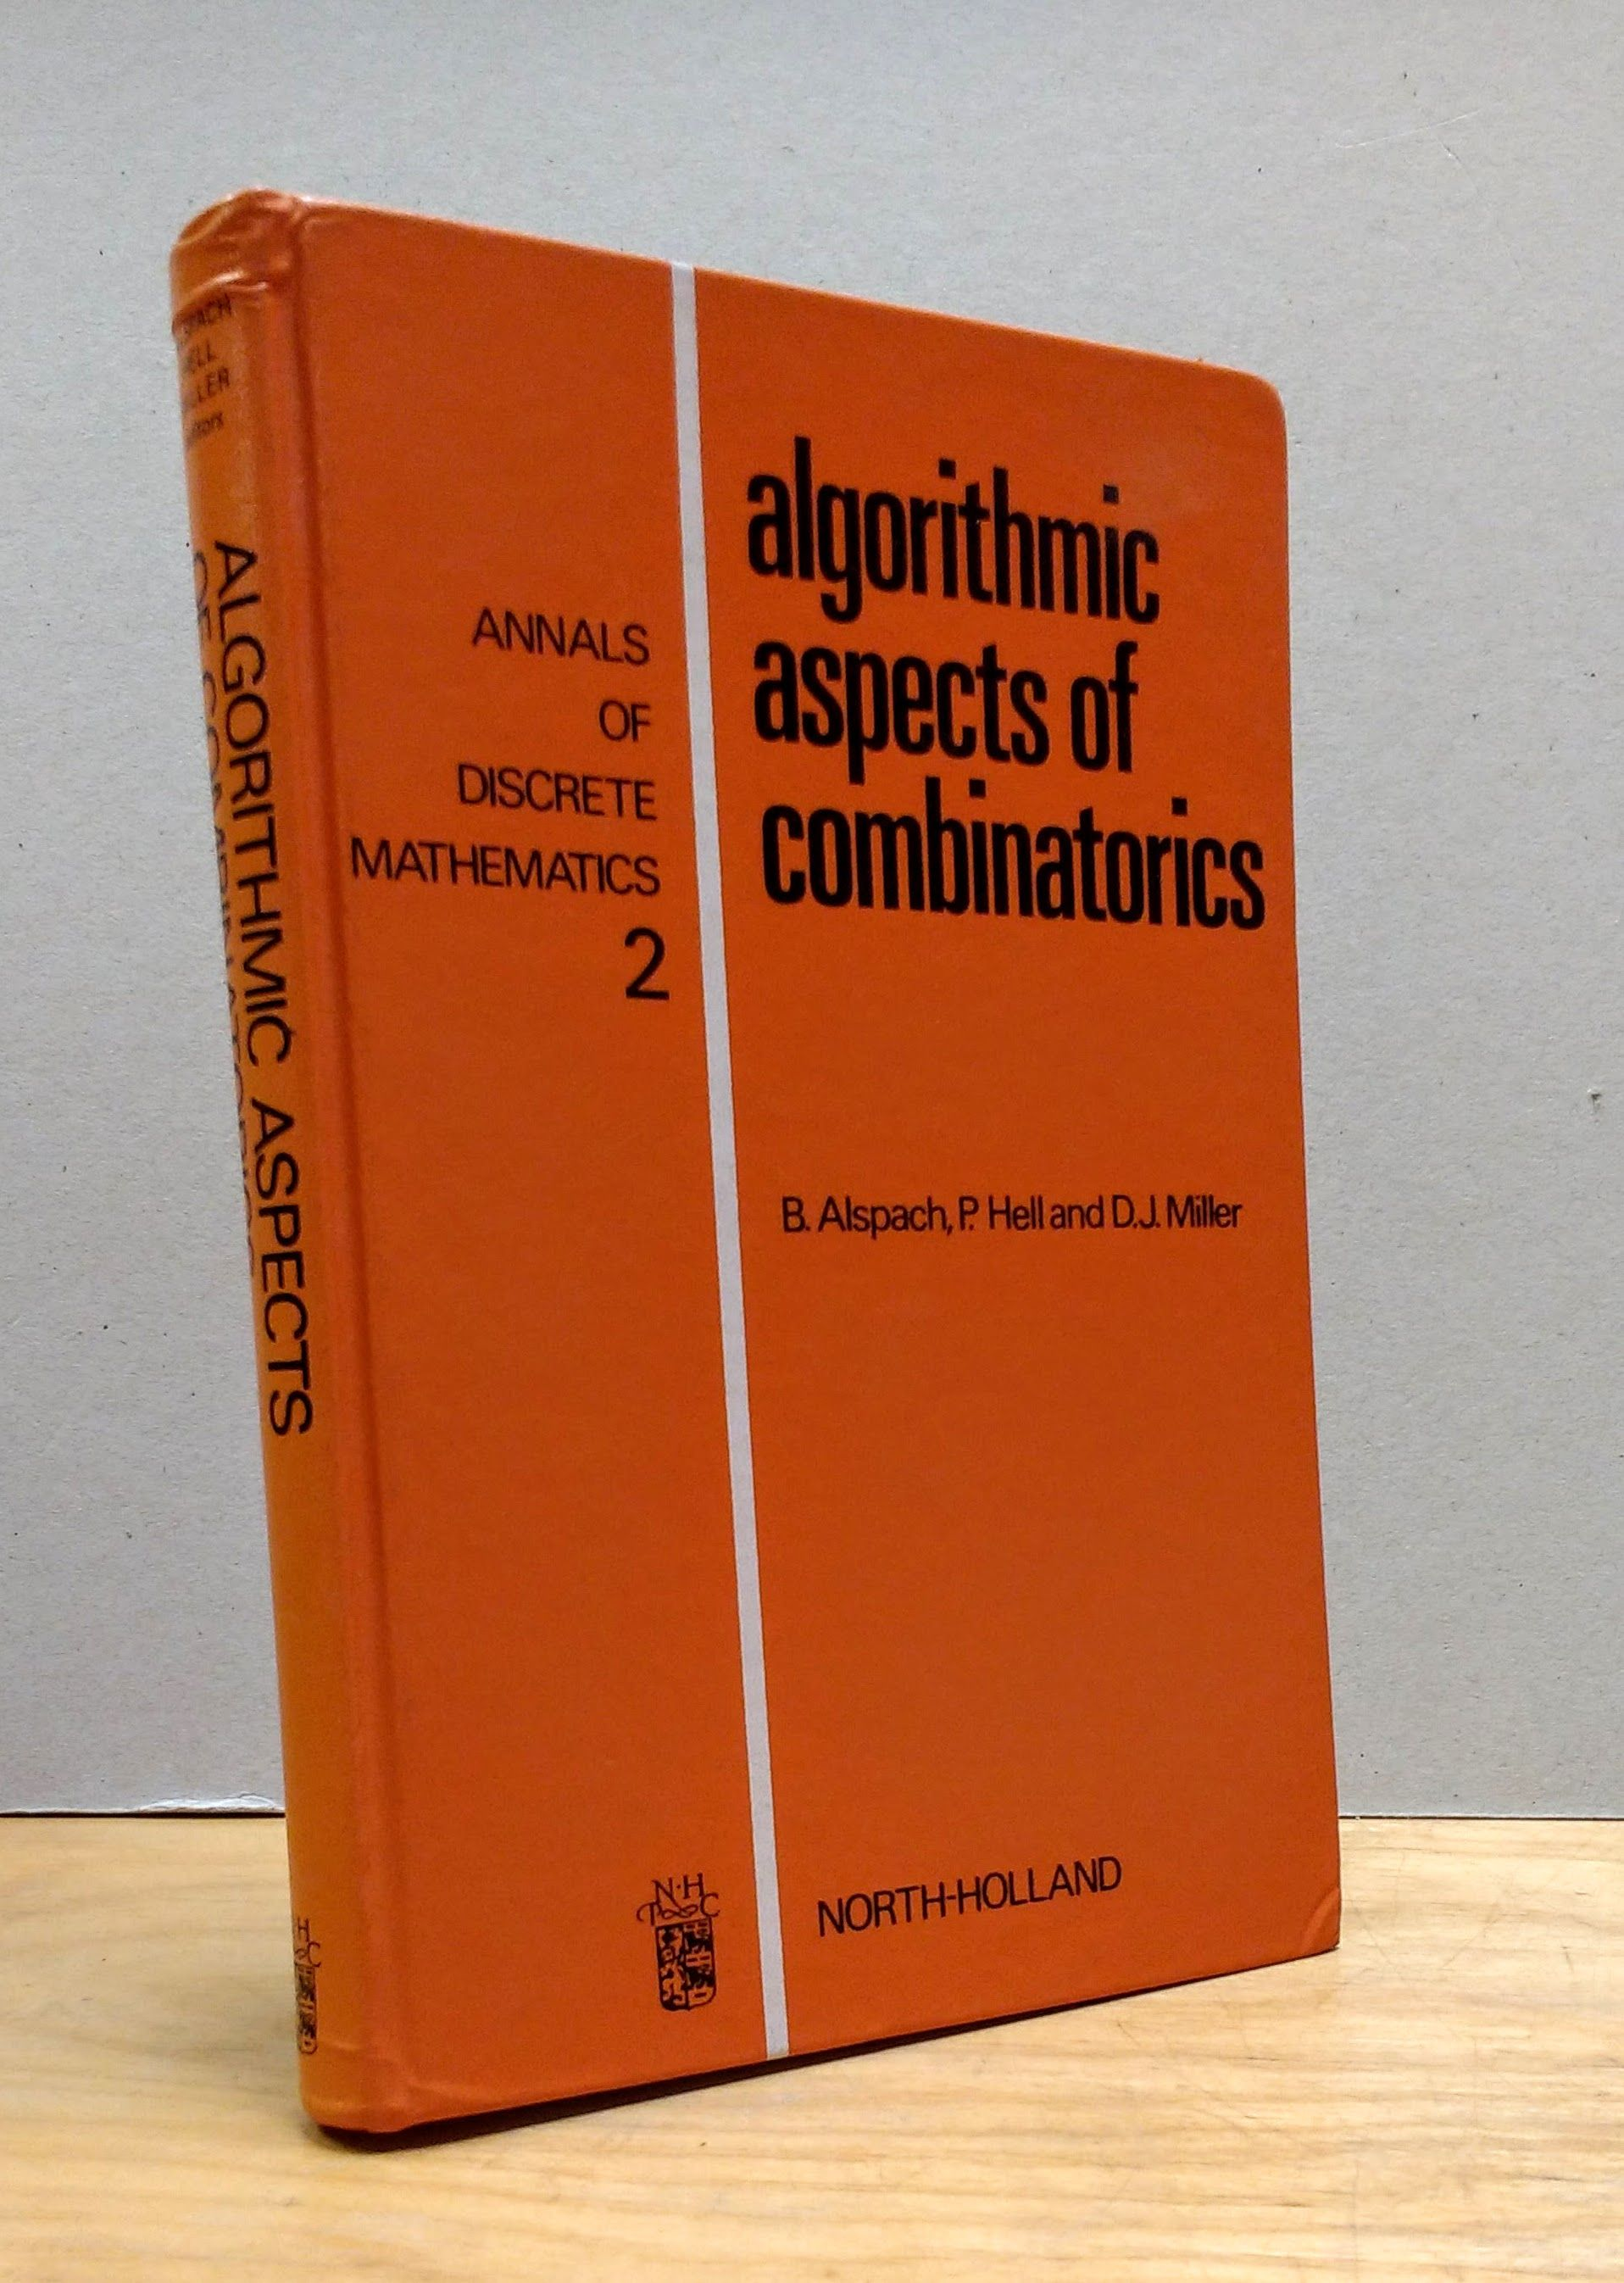 Algorithmic Aspects of Combinatorics, Alspach, B. [Editor]; Hell, P. [Series Editor]; Miller, D. J. [Series Editor];